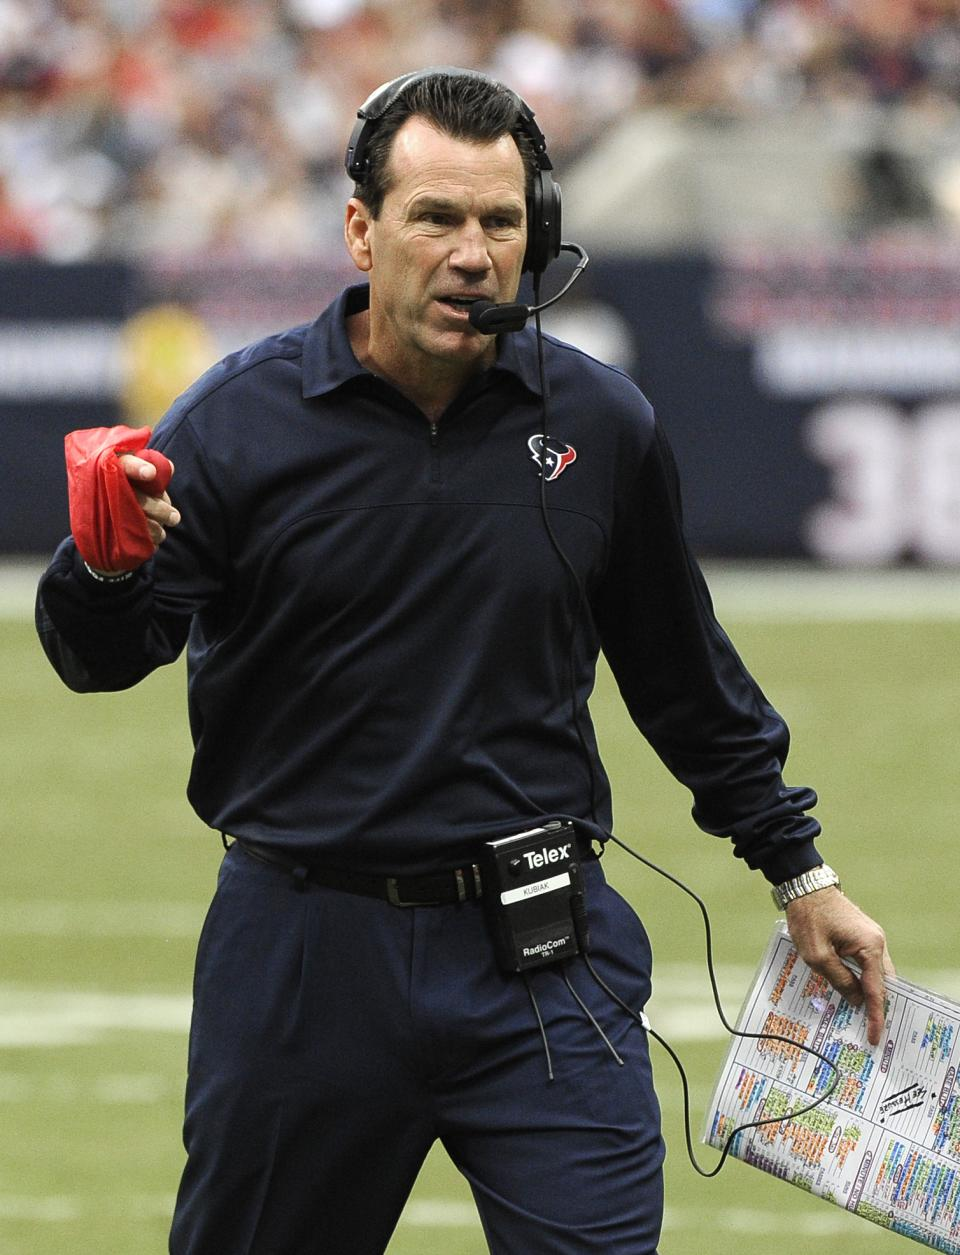 Houston Texans coach Gary Kubiak waves a red flag to challaenge a first down call in the first quarter of an NFL football game against the Tennessee Titans Sunday, Sept. 30, 2012, in Houston. (AP Photo/Dave Einsel)